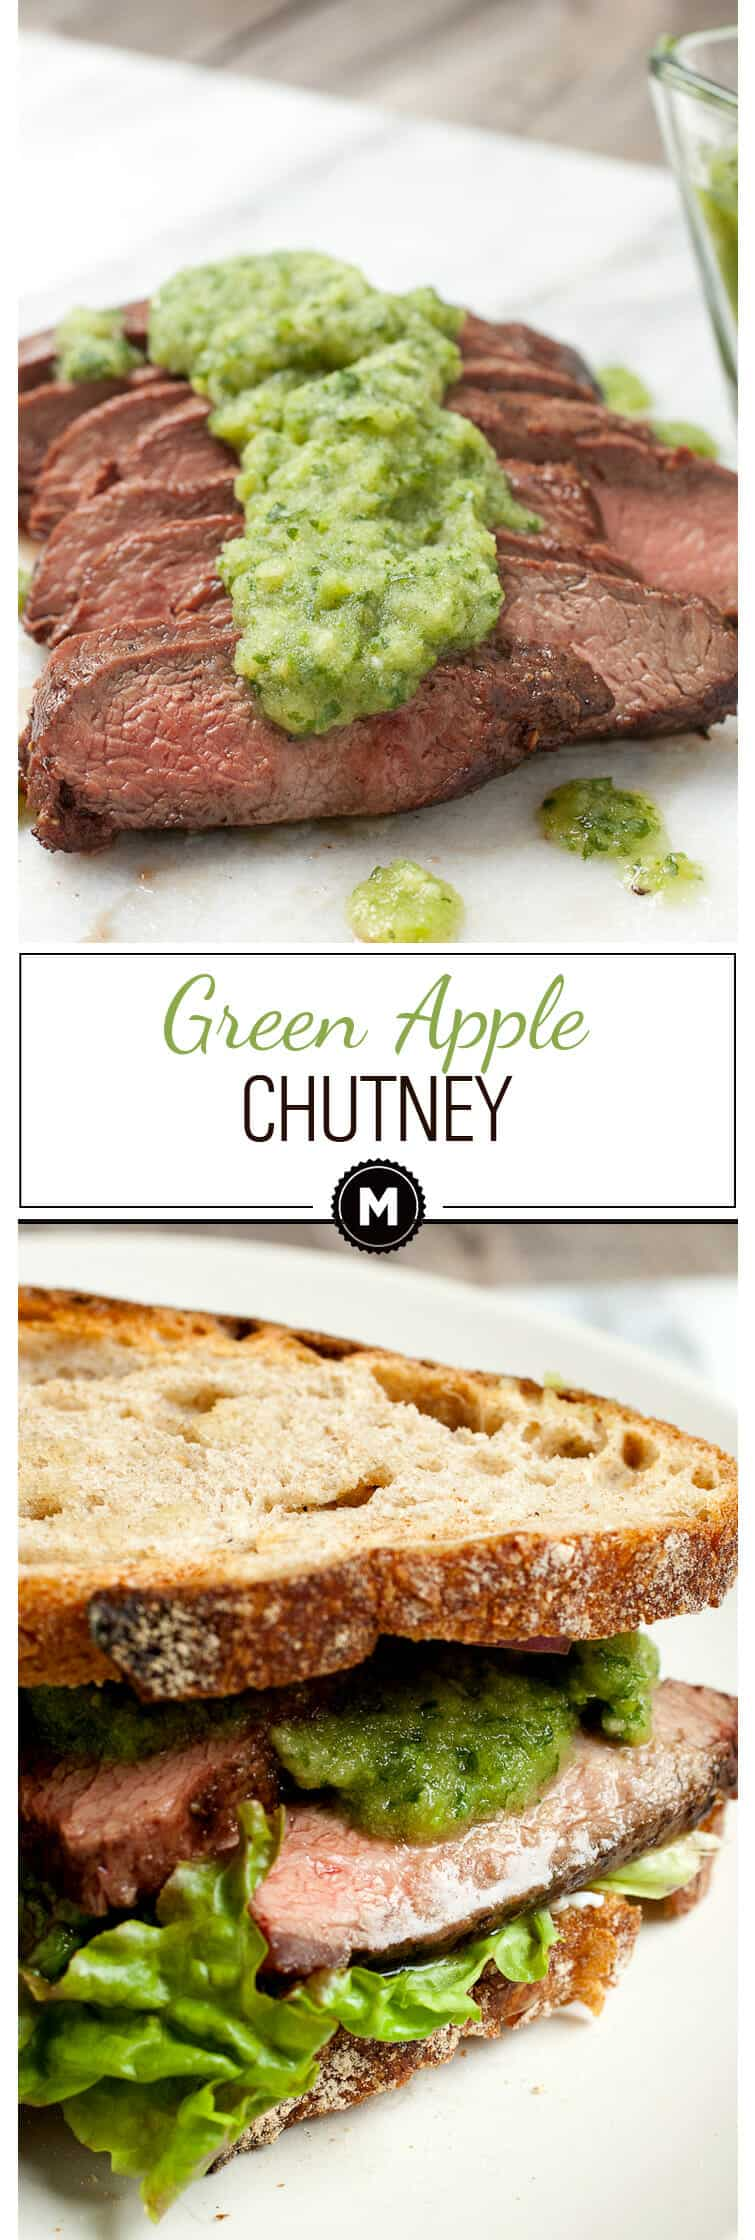 Fresh Green Apple Chutney: Tangy green apples mixed with herbs, ginger, and garlic for a perfect summer chutney. Great on any grilled meat, but especially grilled steak! | macheesmo.com